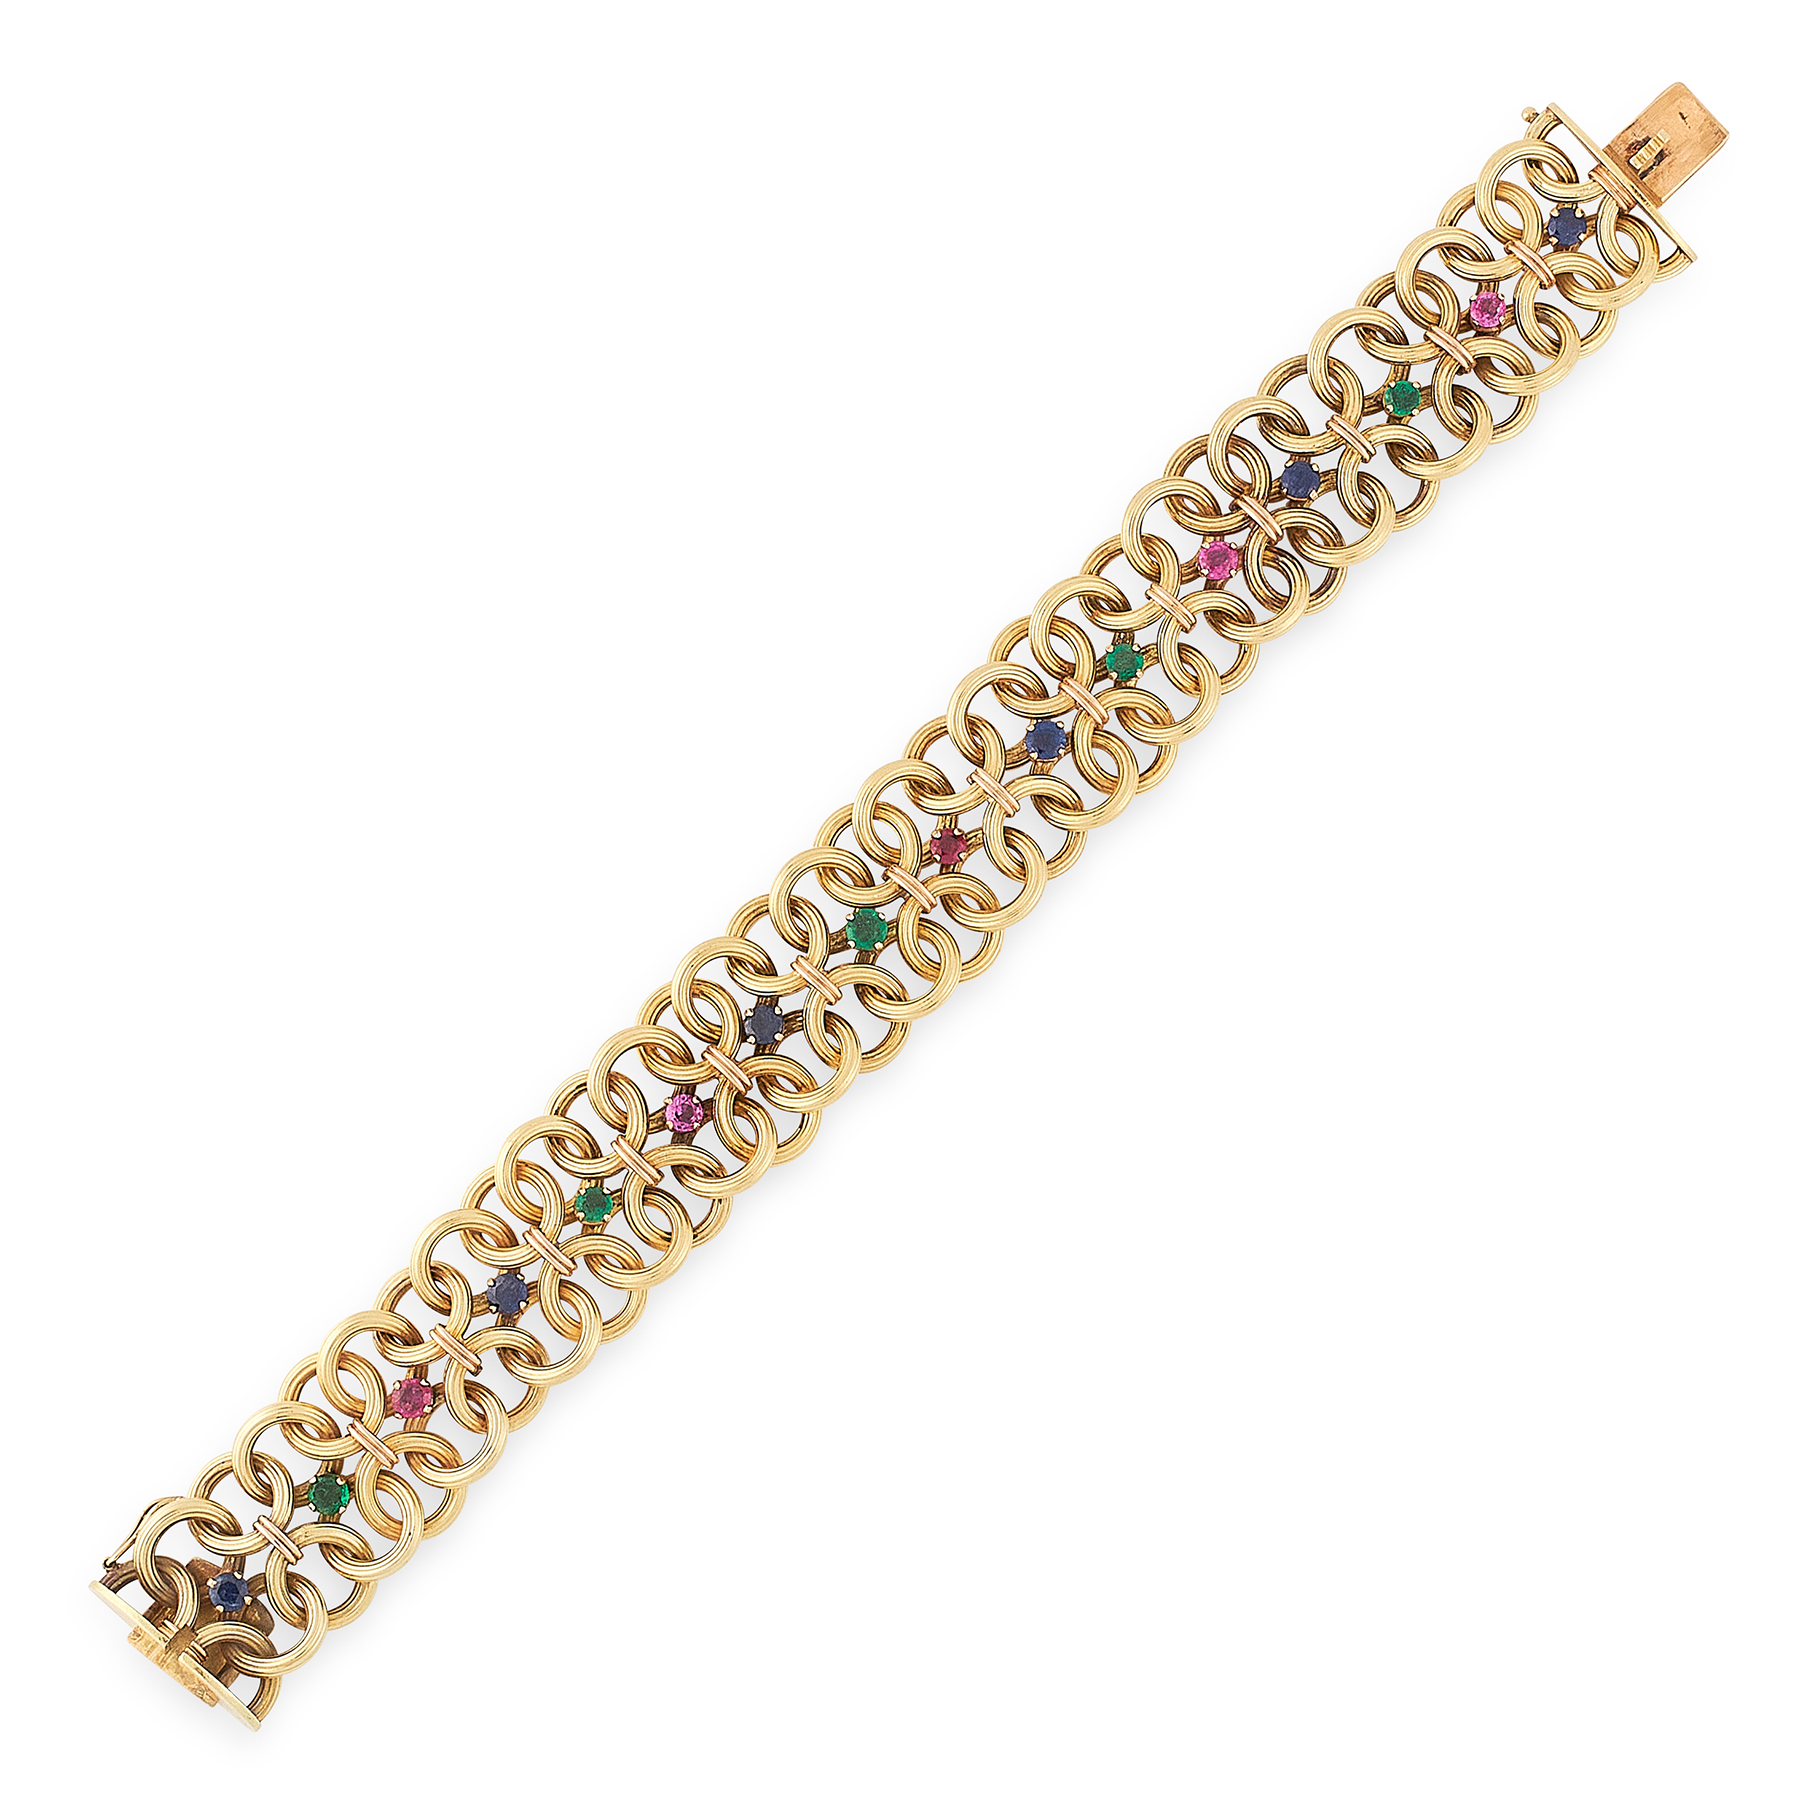 A VINTAGE RUBY, EMERALD AND SAPPHIRE BRACELET, CARTIER 1967 in 18ct yellow gold, designed as a